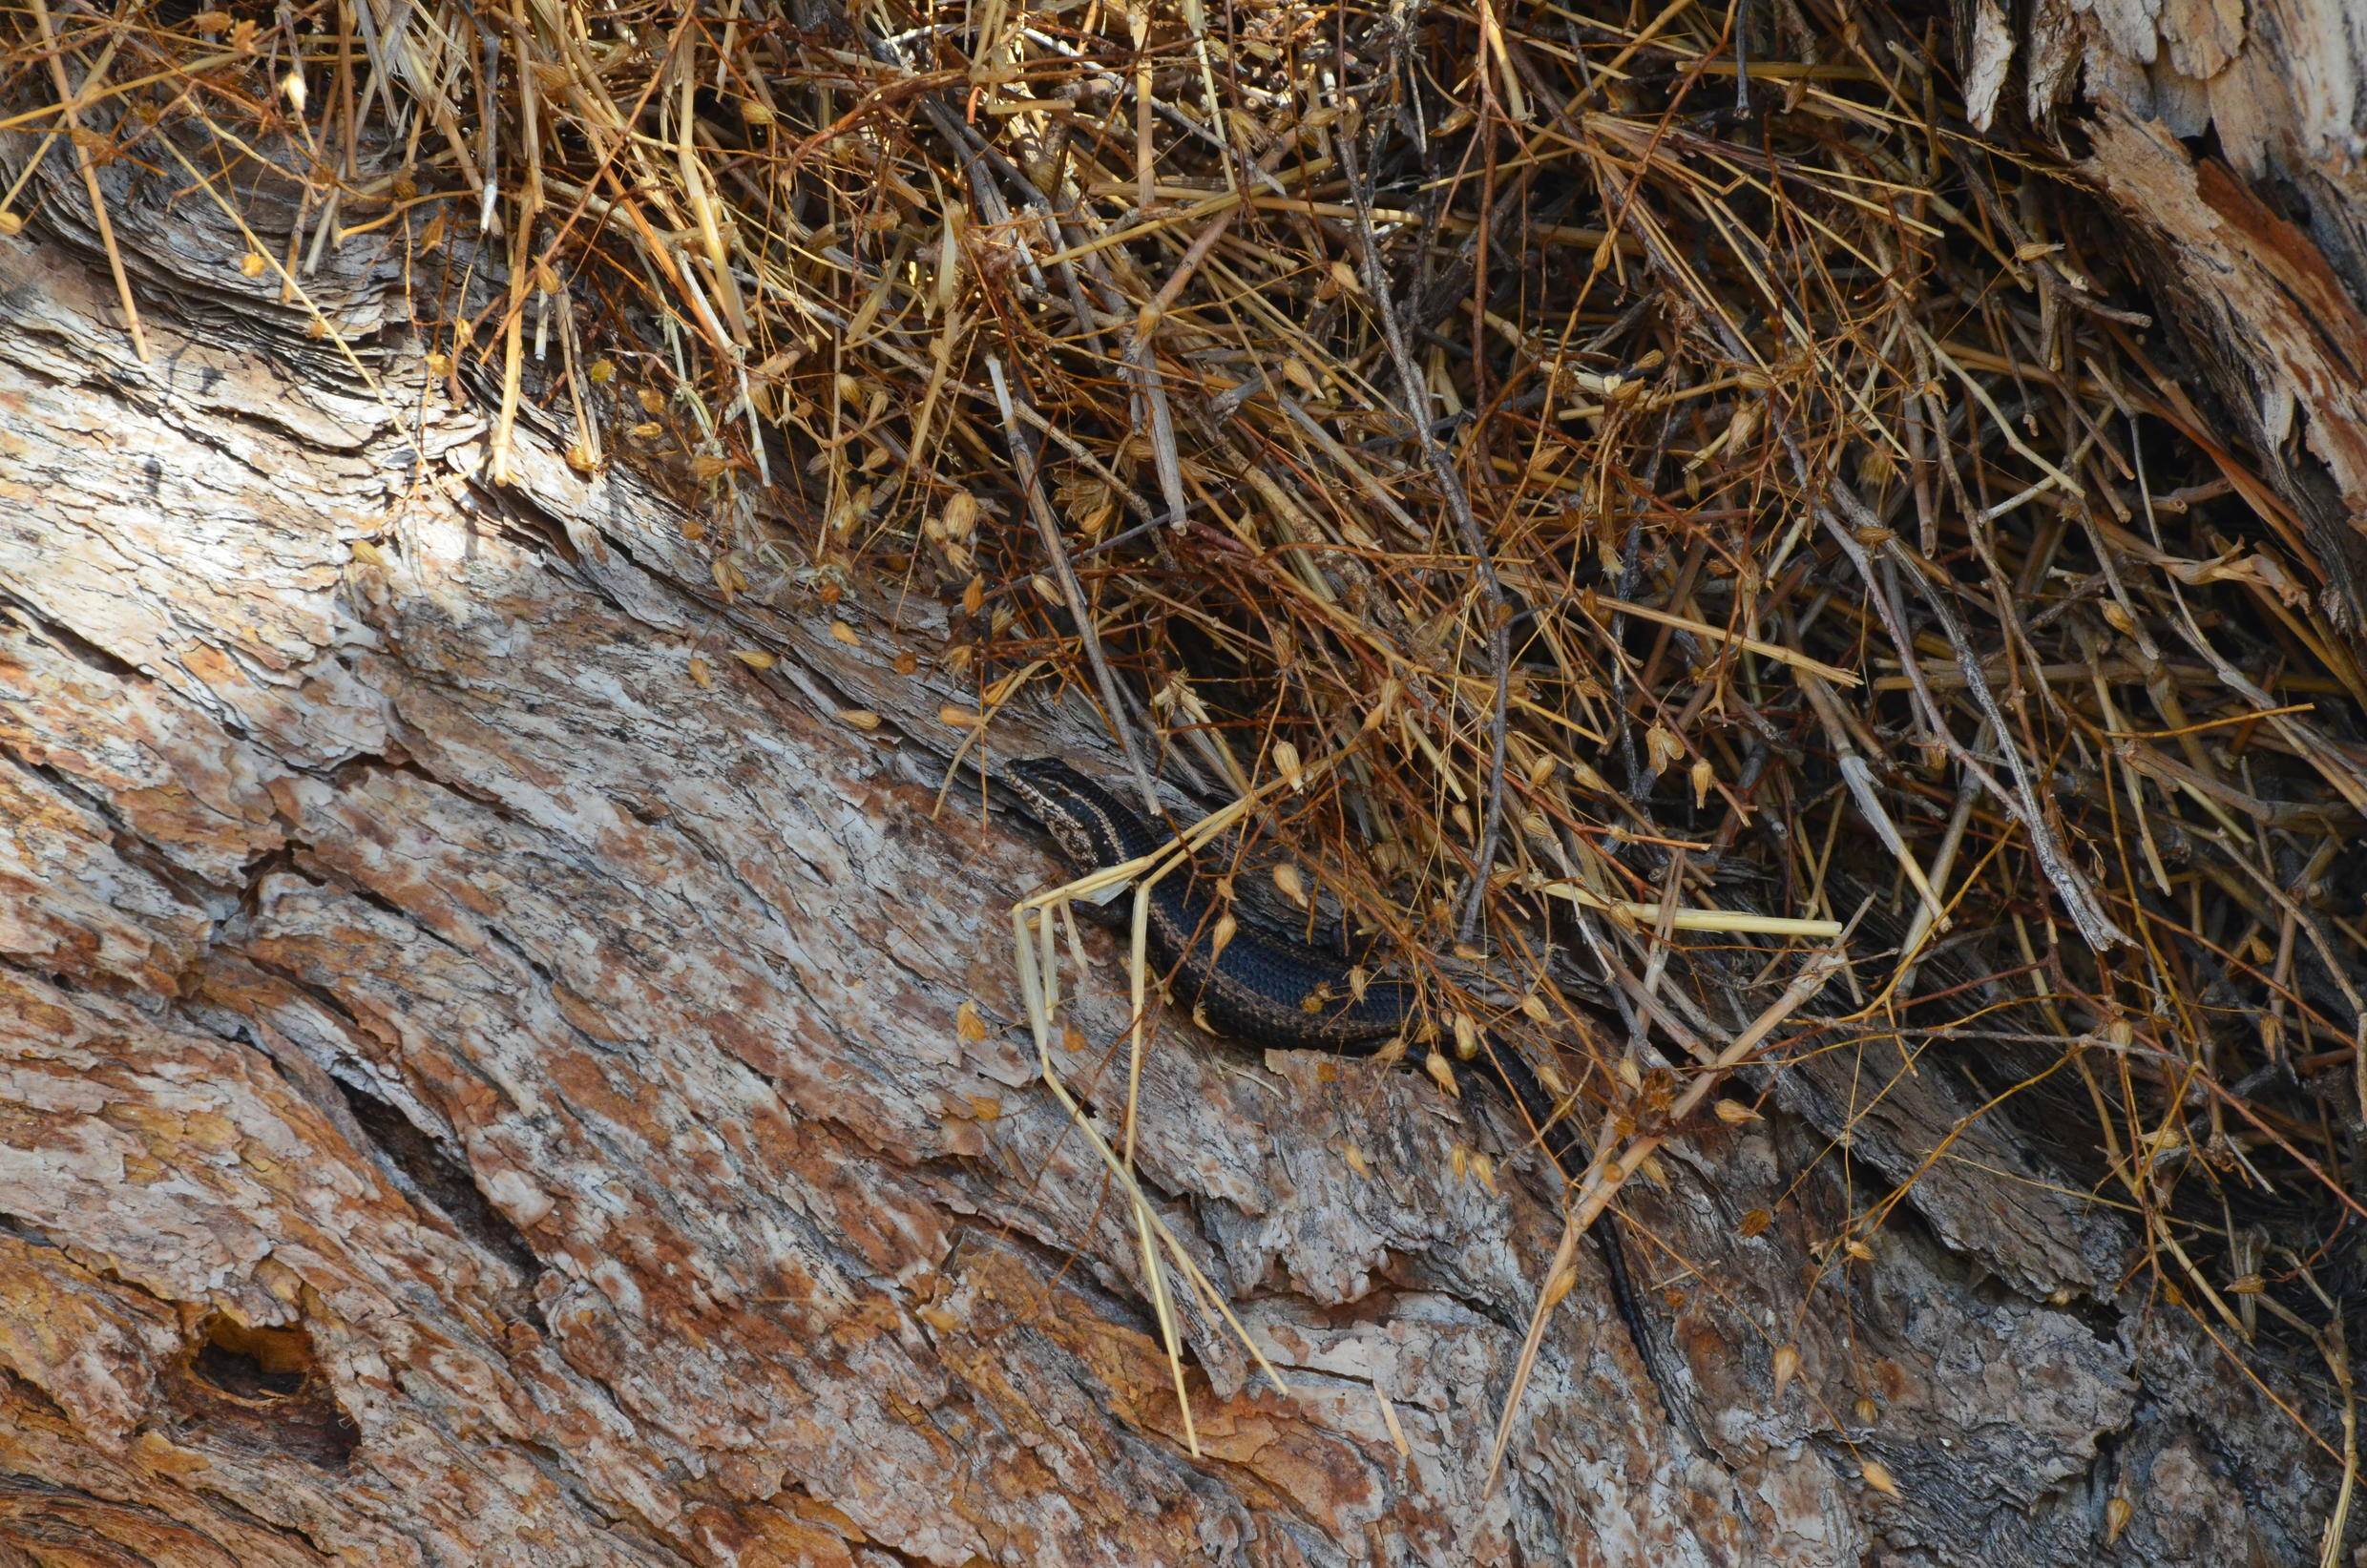 Kalahari tree skinks are found in greater numbers around trees with sociable weaver nests in them.